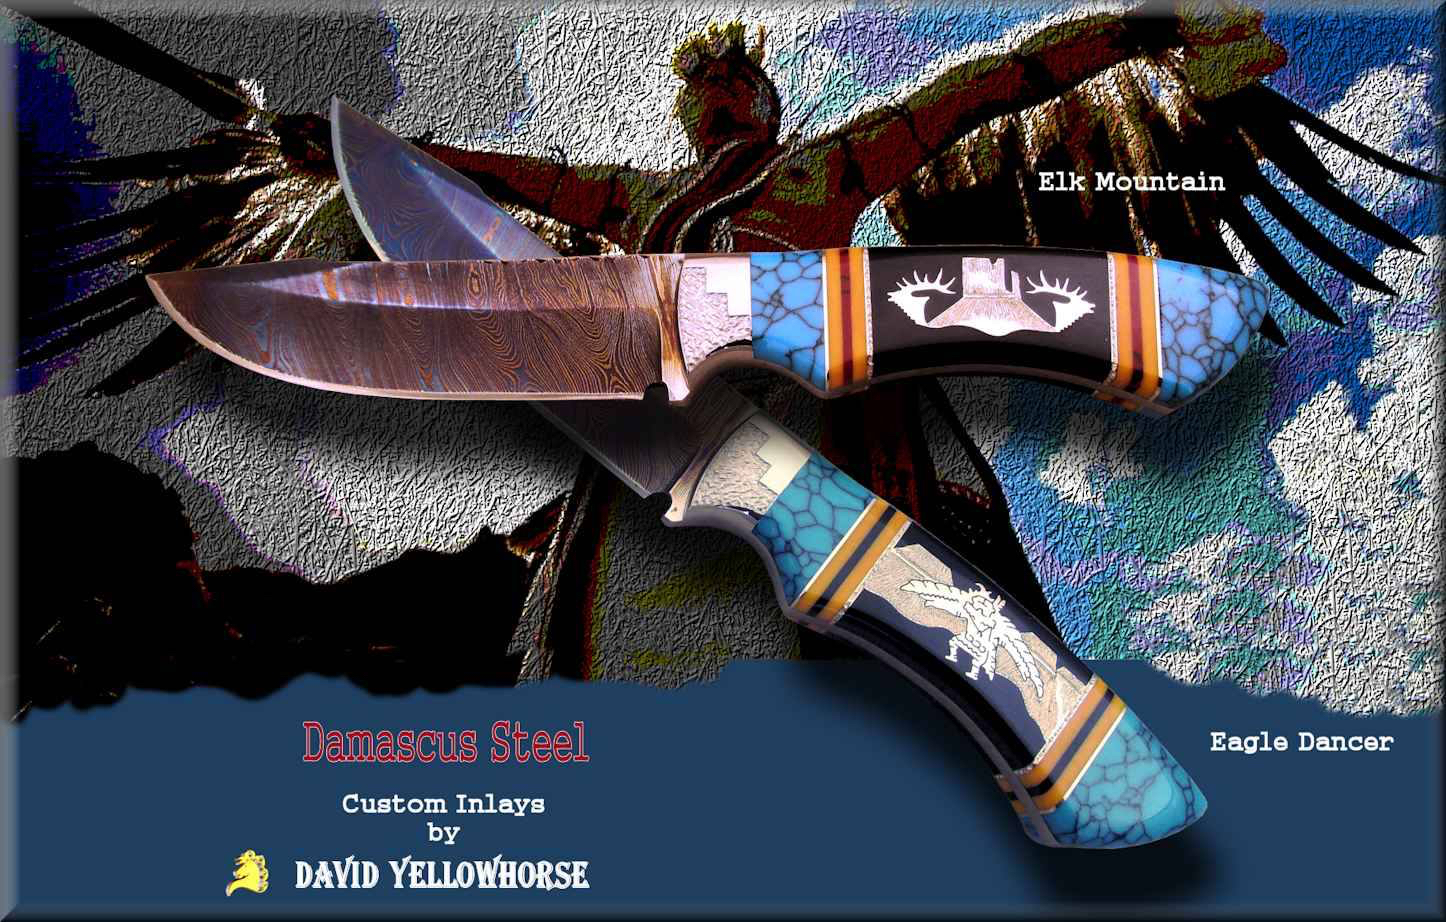 Damascus Patina Blades - David Yellowhorse Custom